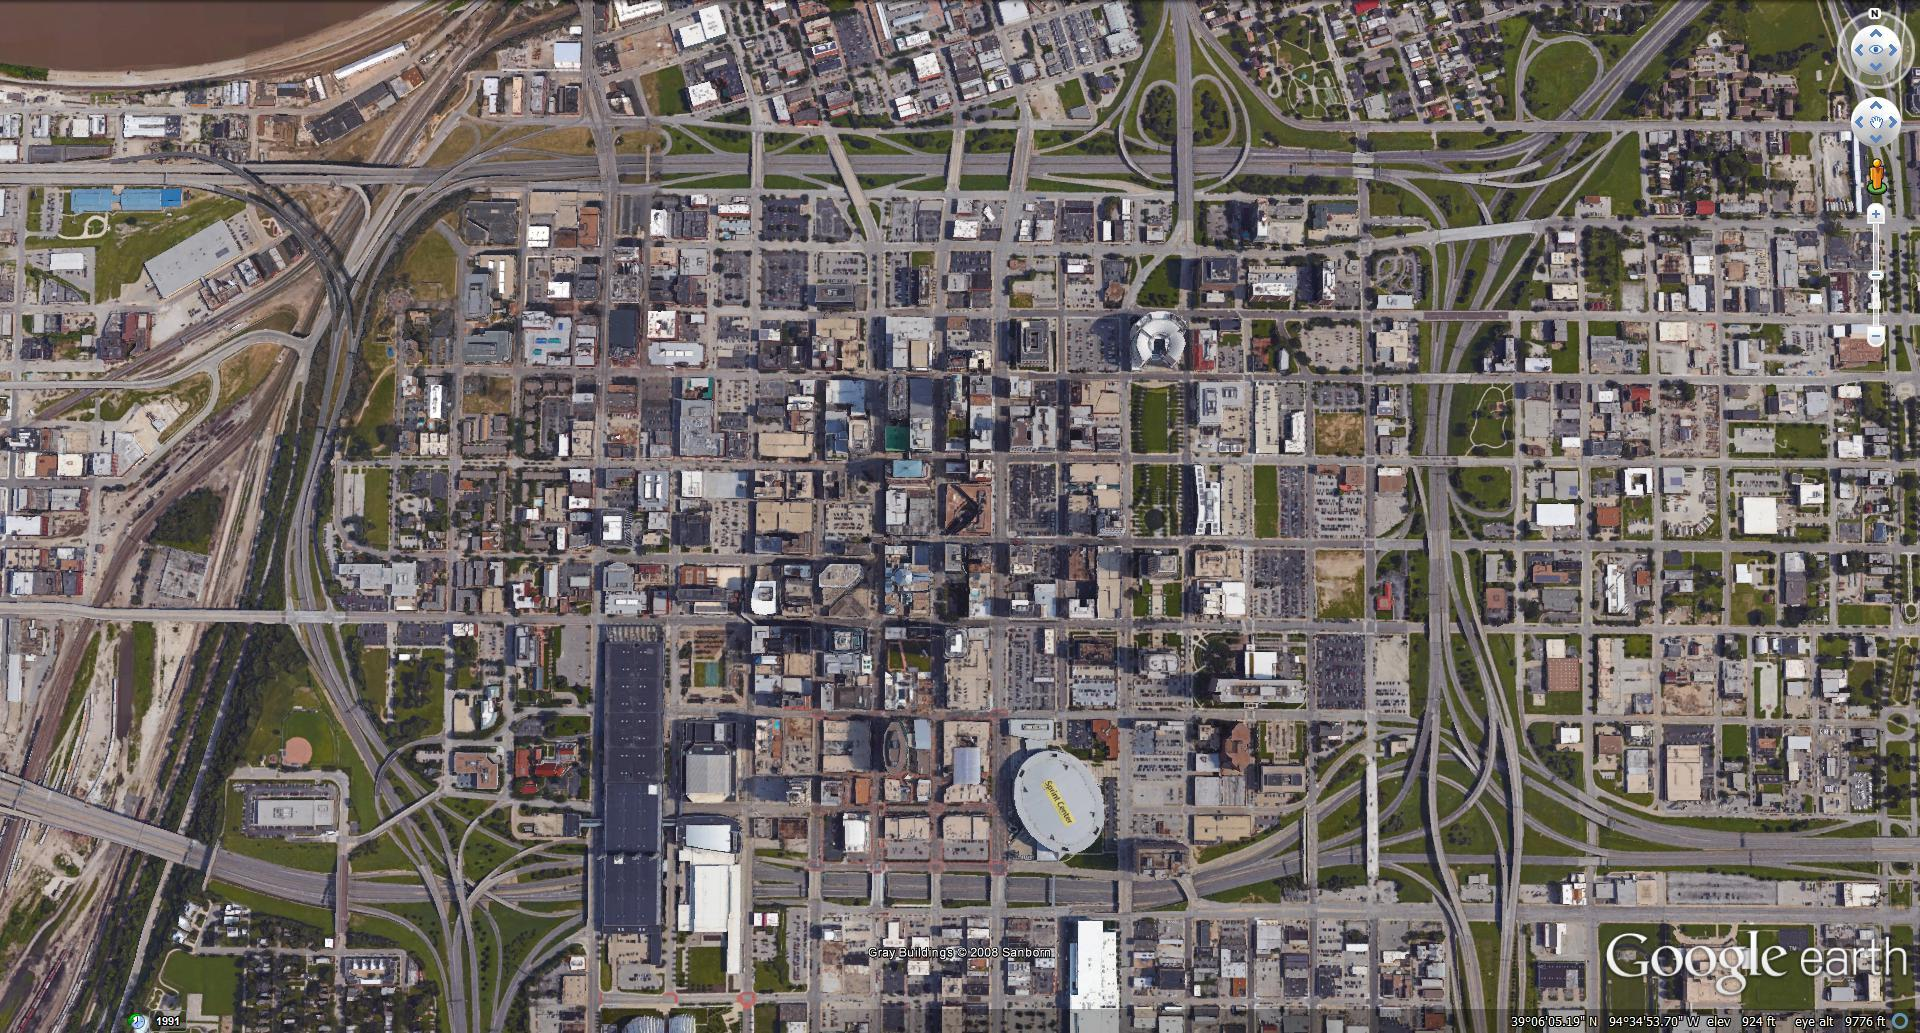 check out what downtown kansas city looks like in 'simcity'  kcur - krest used this google earth image of kansas city and google maps asreferences while creating his virtual kansas city downtown